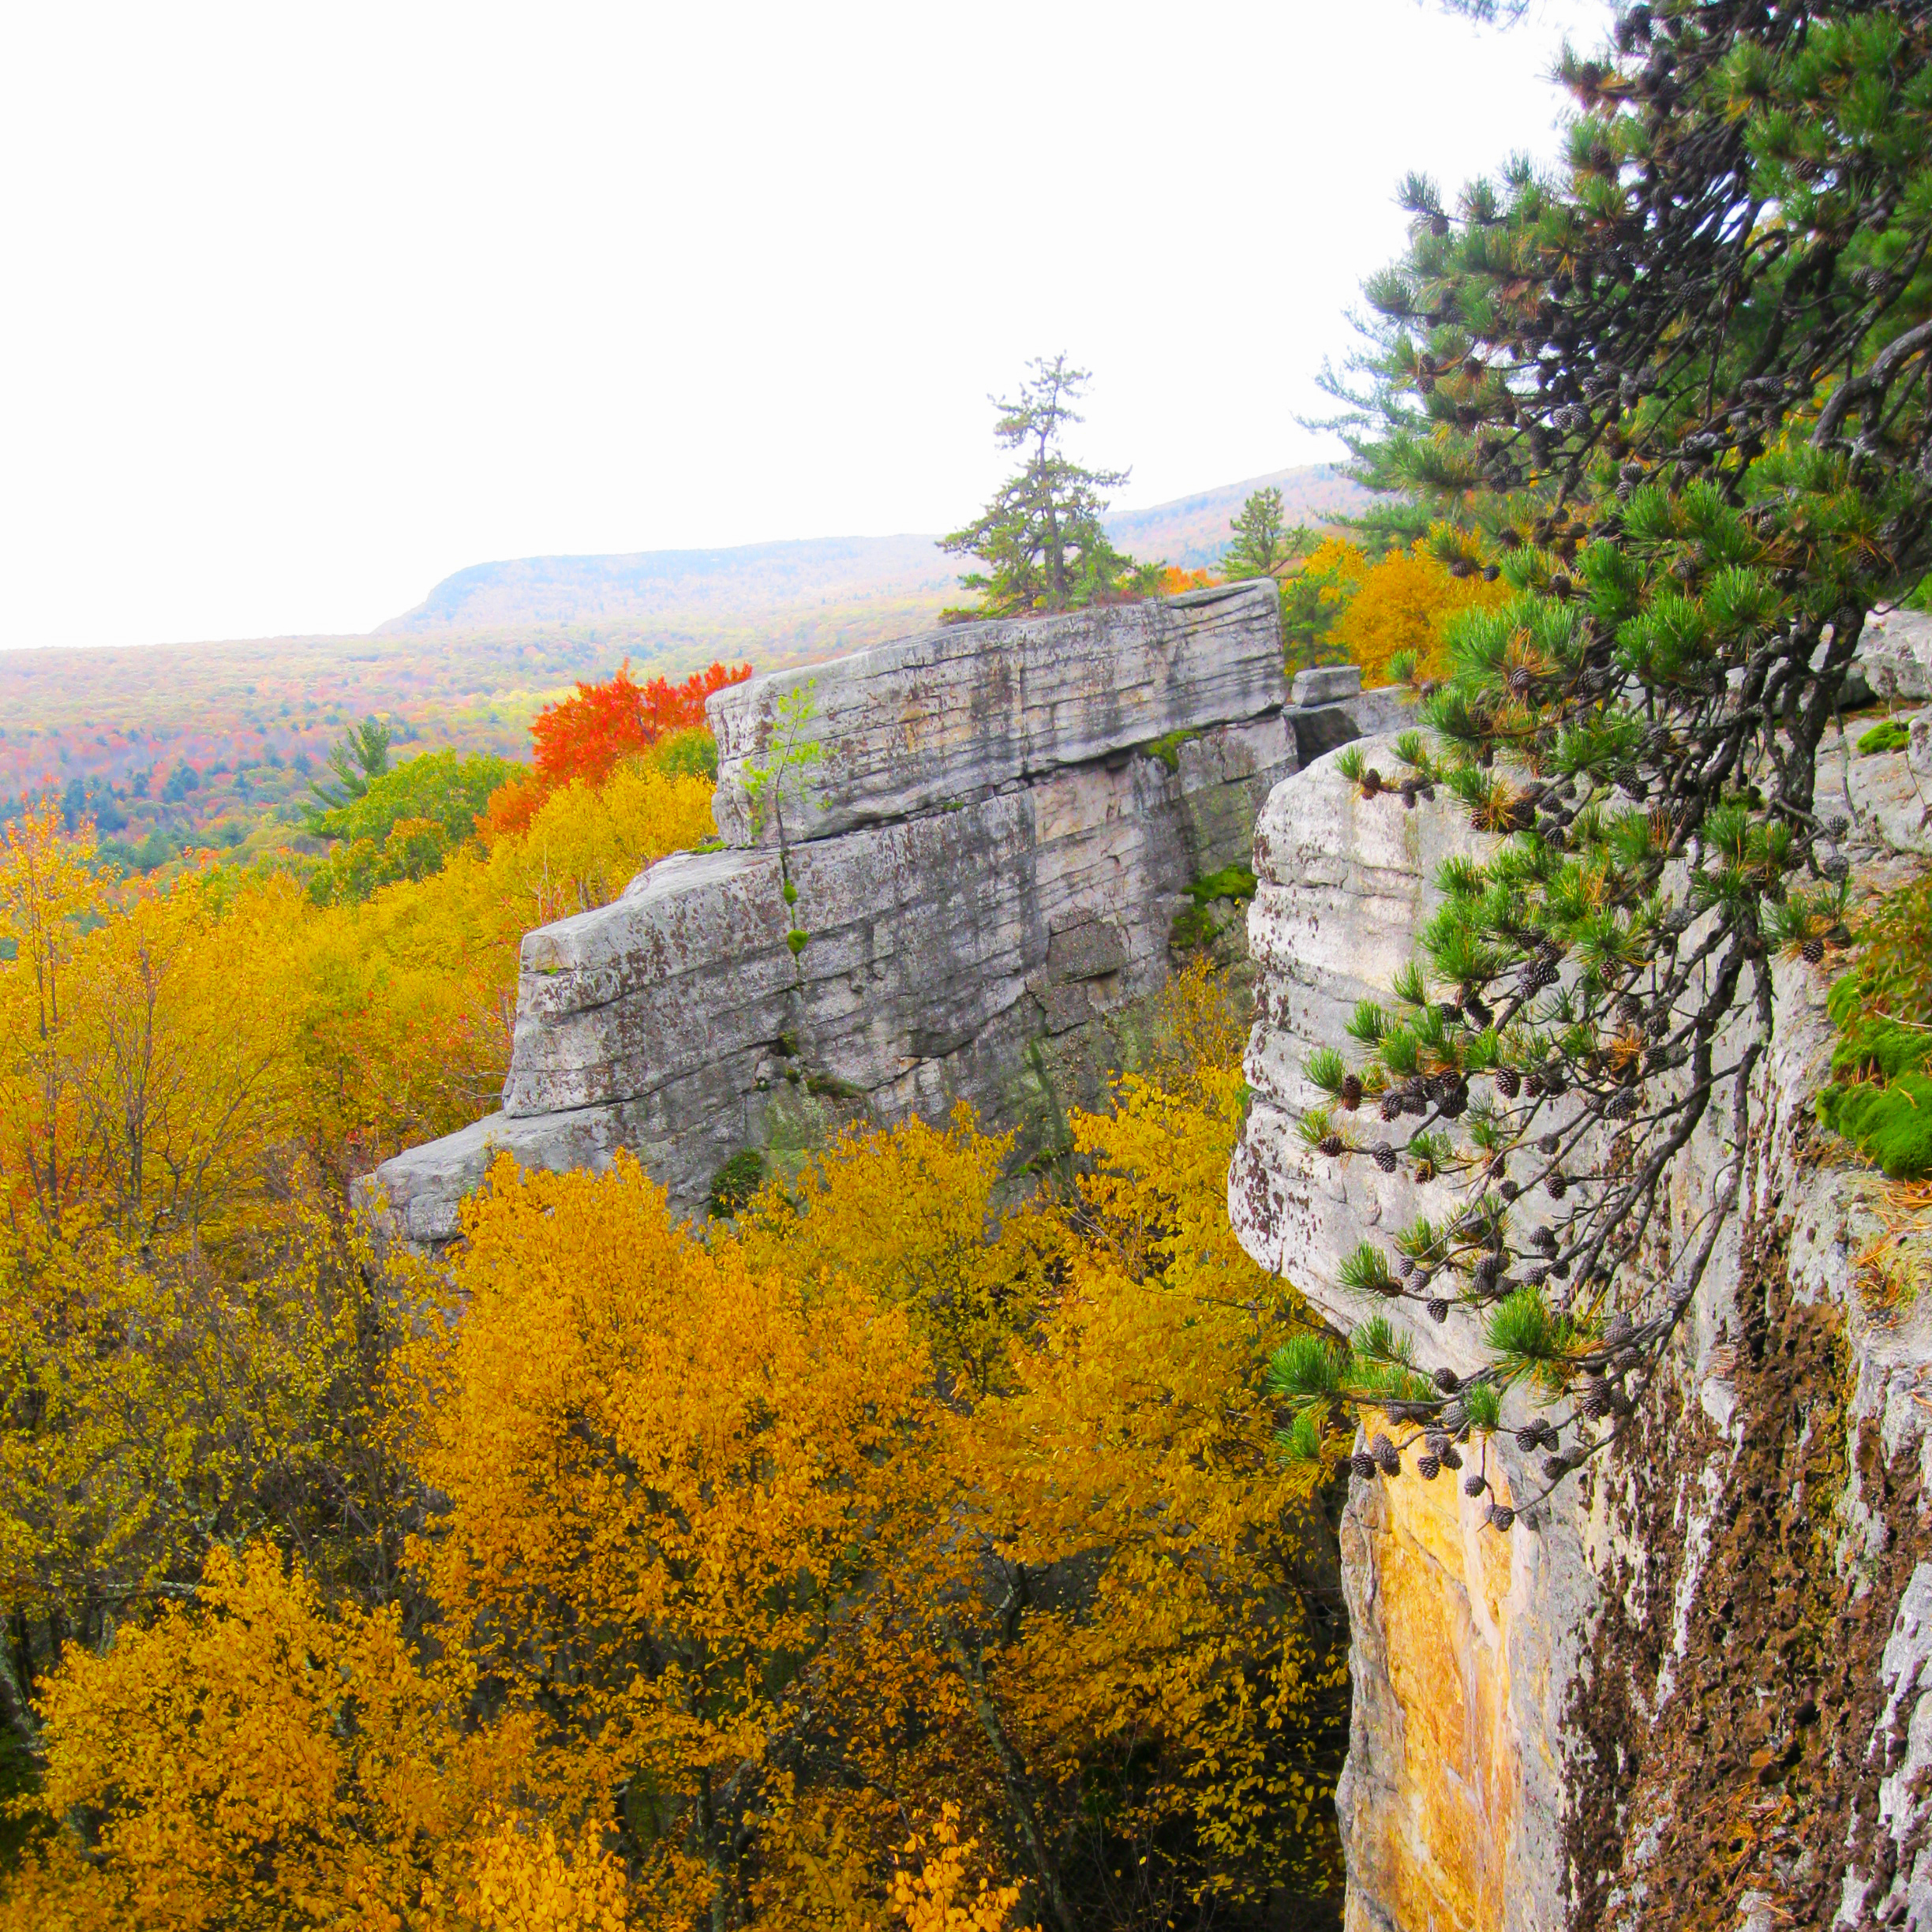 The Shark Fin rock outcropping of Lost City, and cliffs surrounded by yellow autumn trees